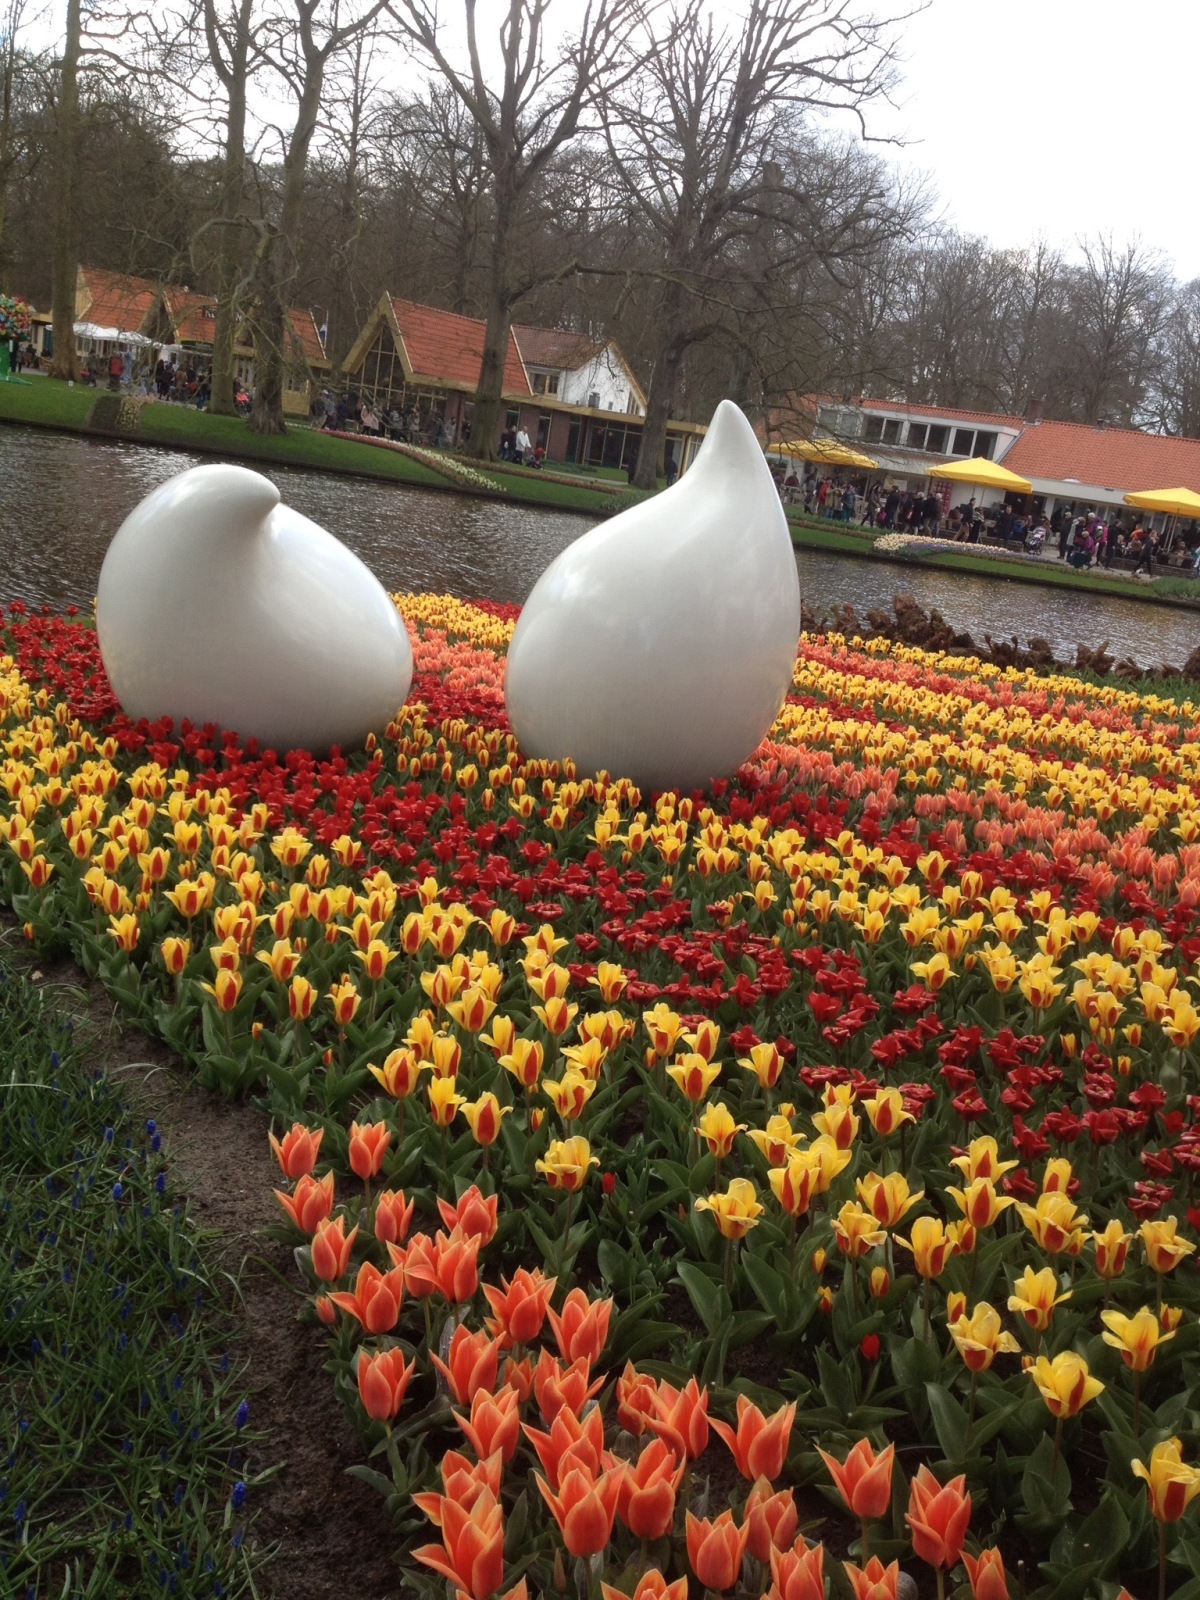 Keukenhof in full bloom 2015 - My work building in the the background.